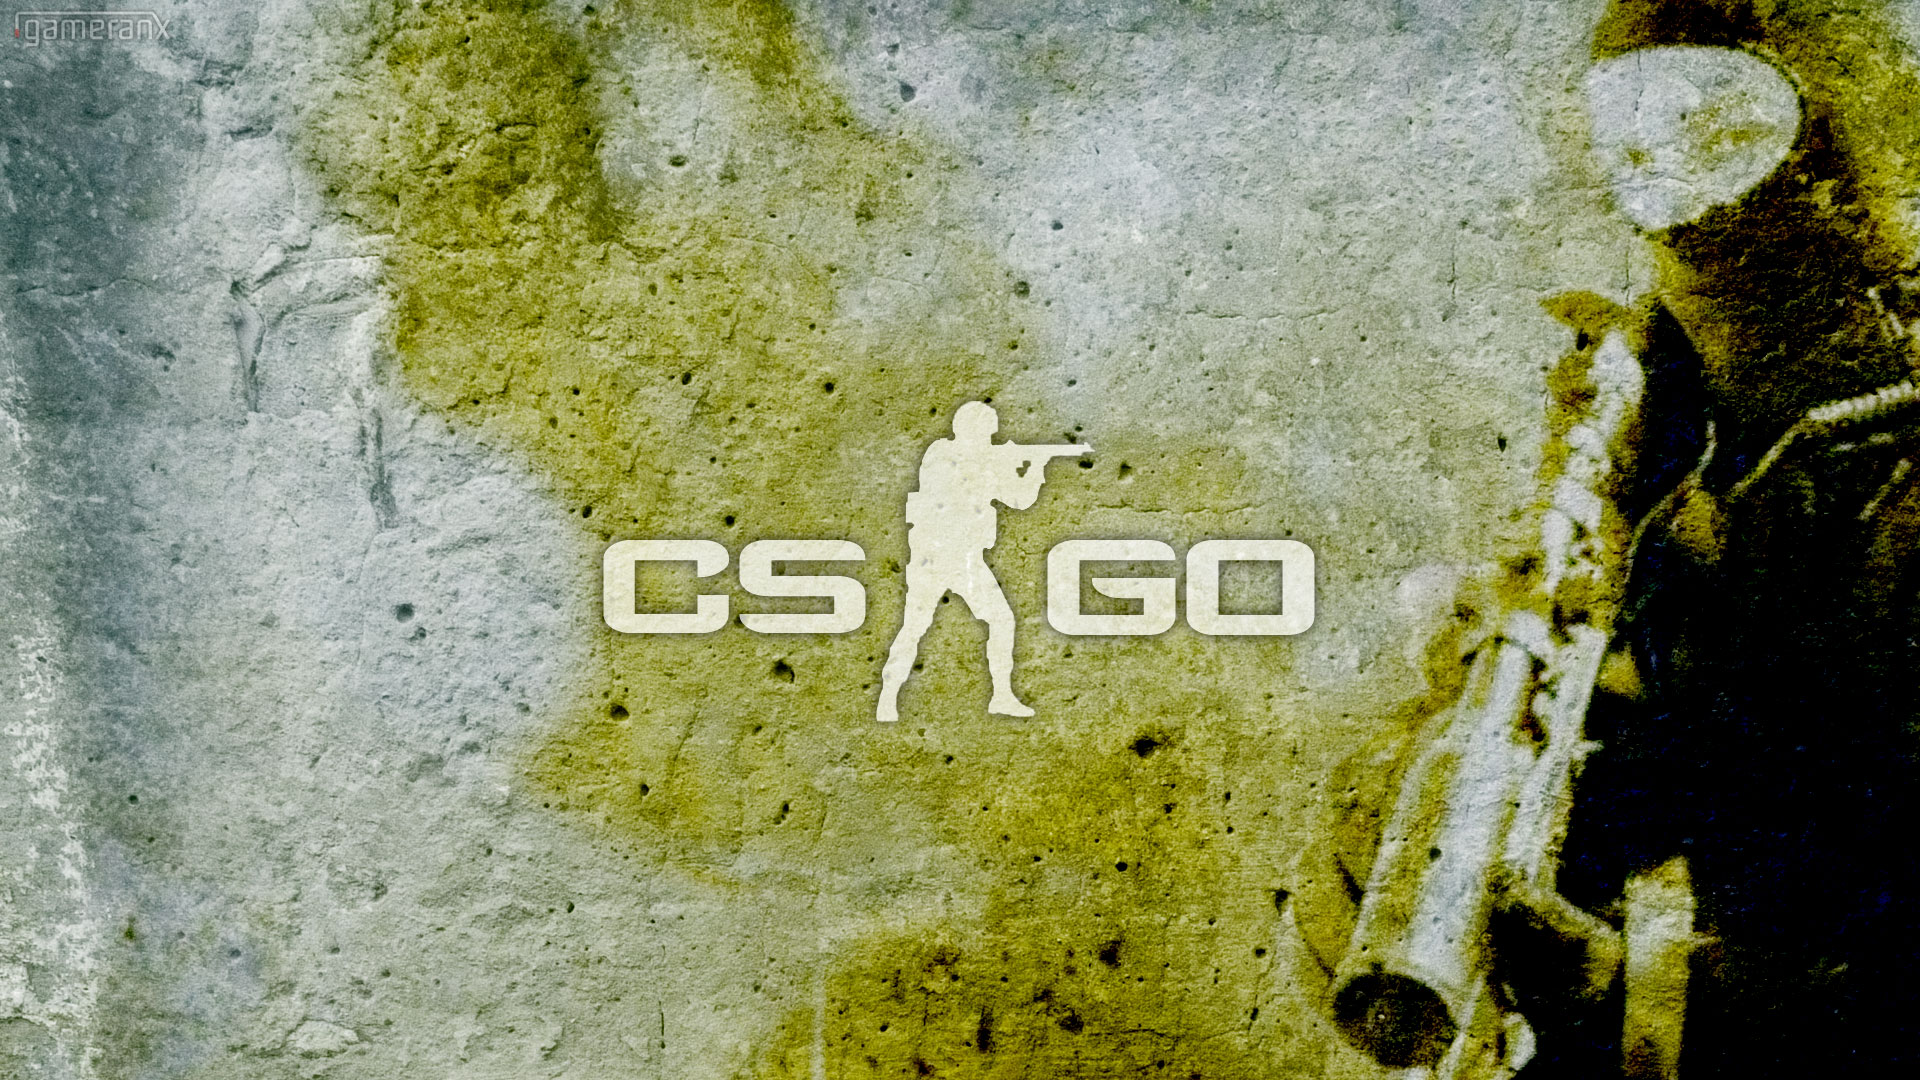 Counter Strike Global Offensive Wallpapers in HD 1920x1080